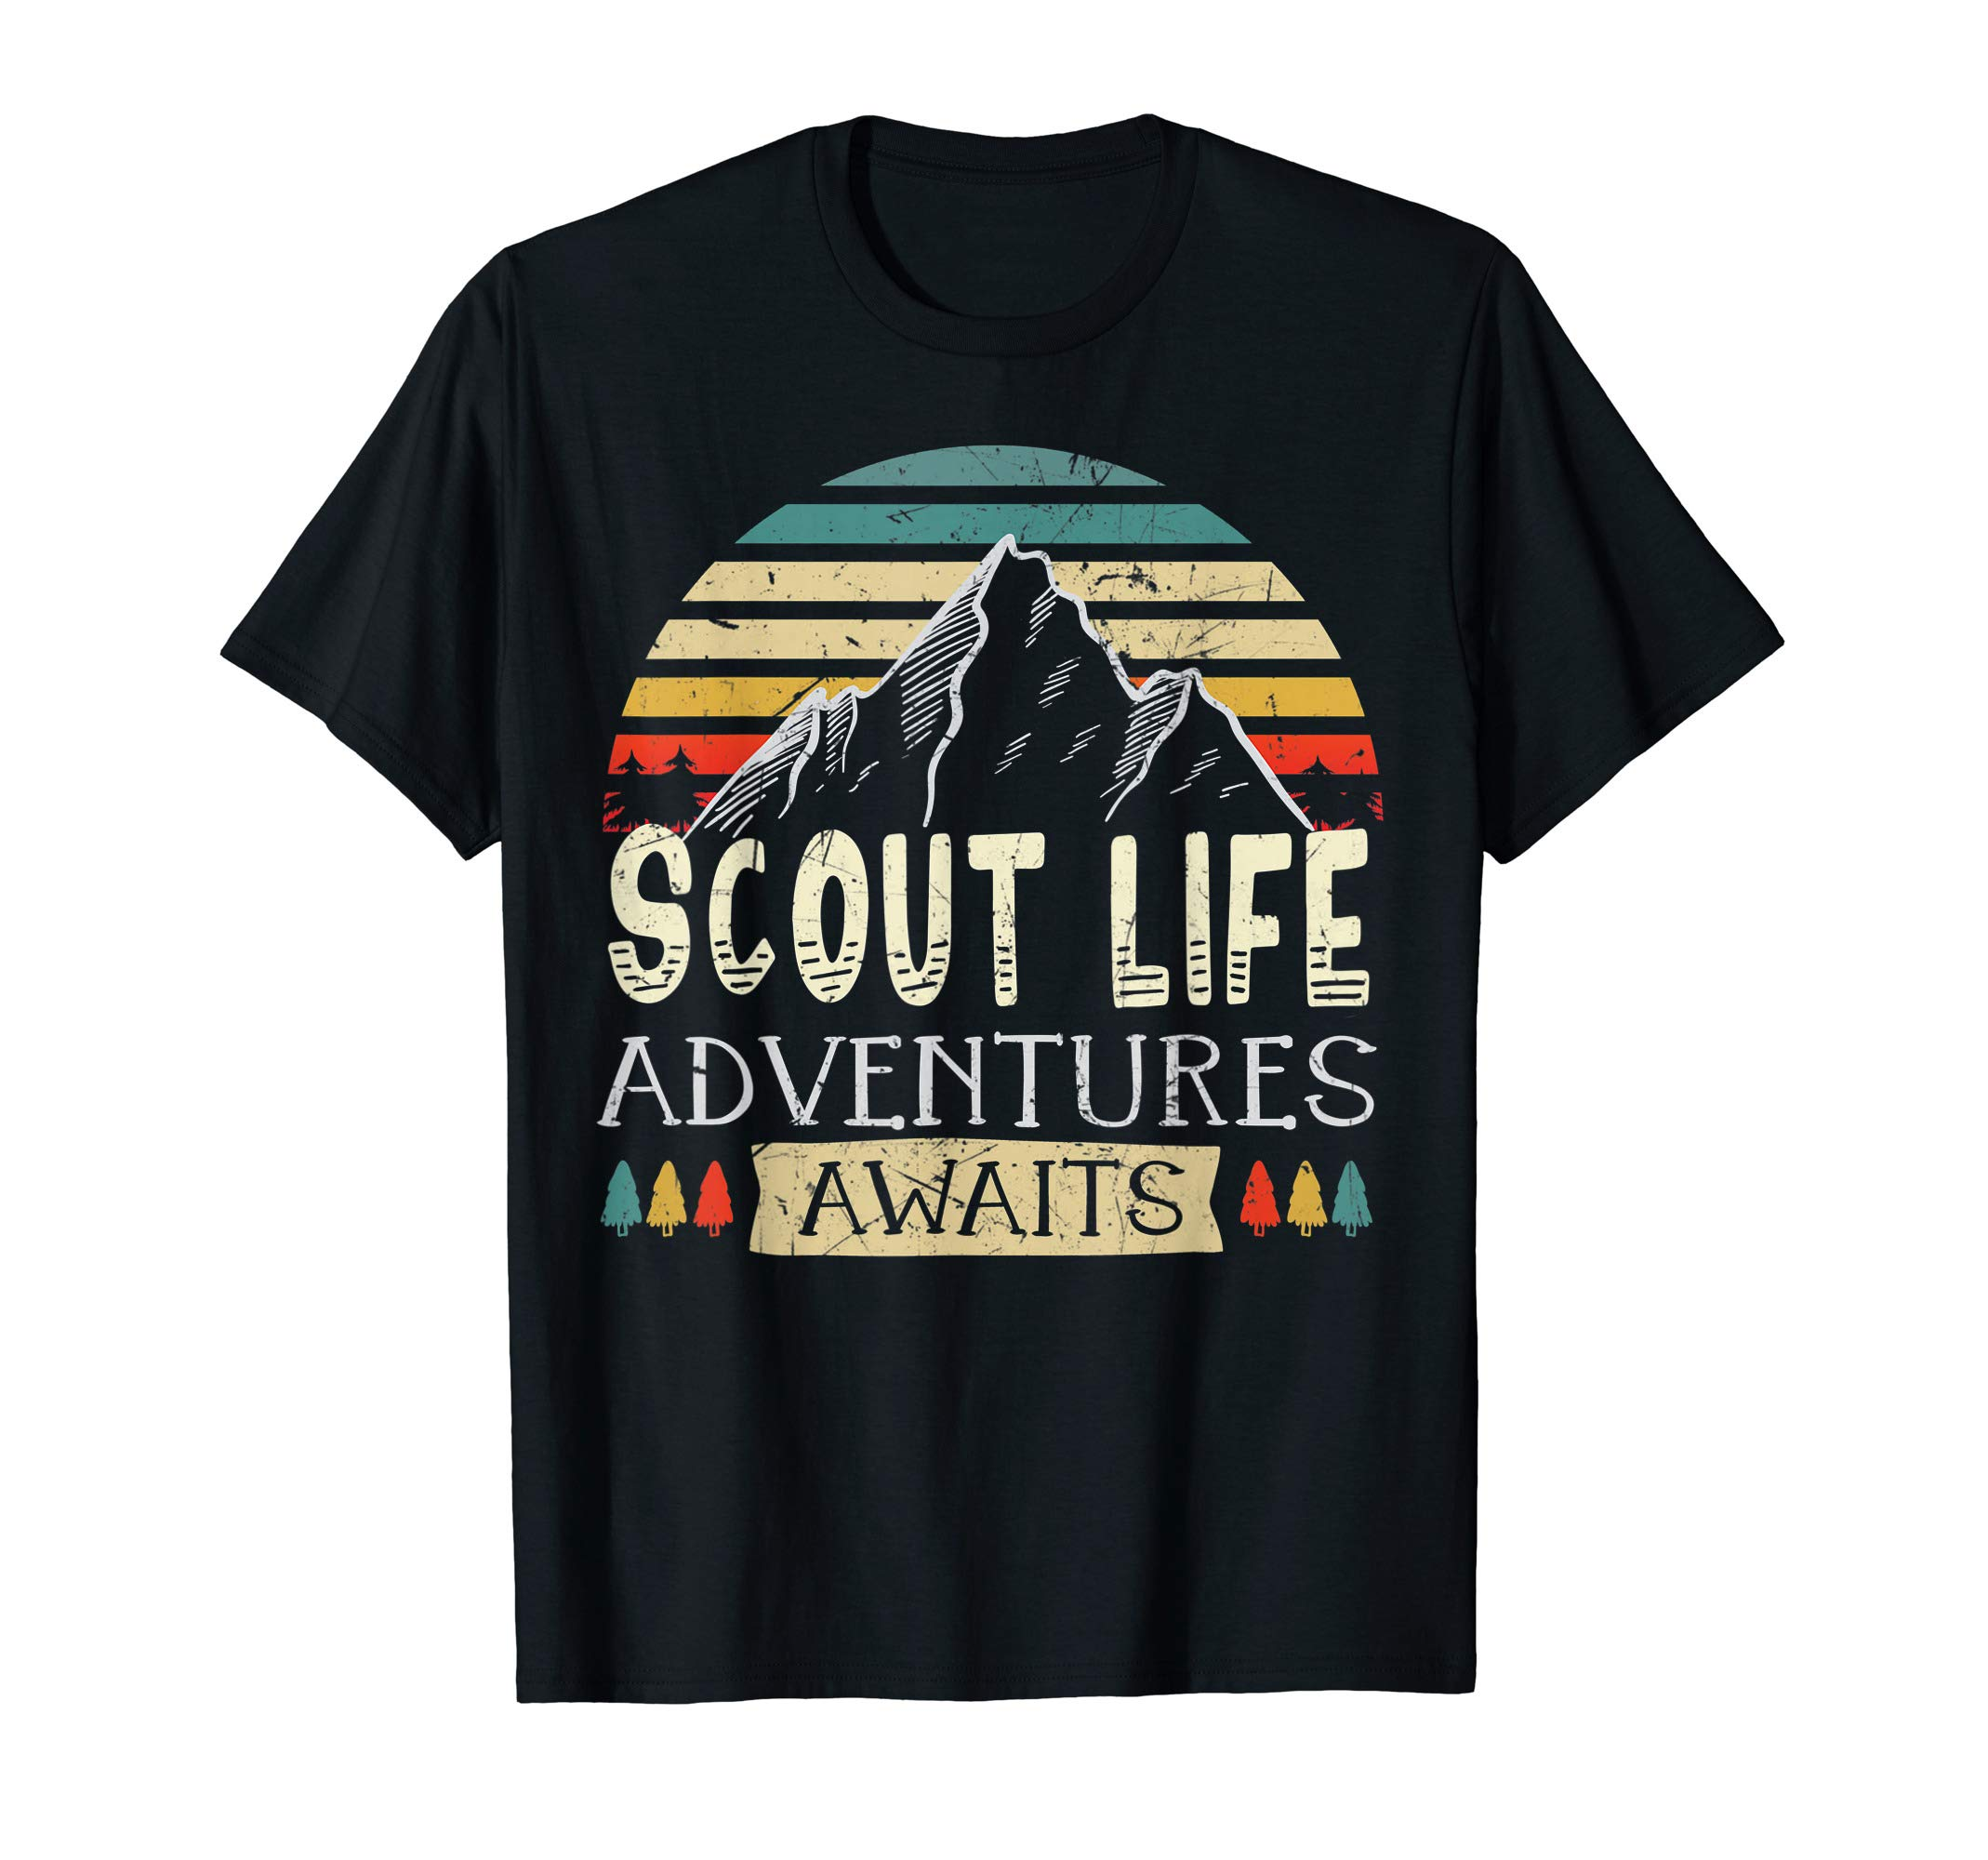 Scout Life Adventures Awaits Scouting life gift T-Shirt by Cub Camping Hiking Scouting Gifts